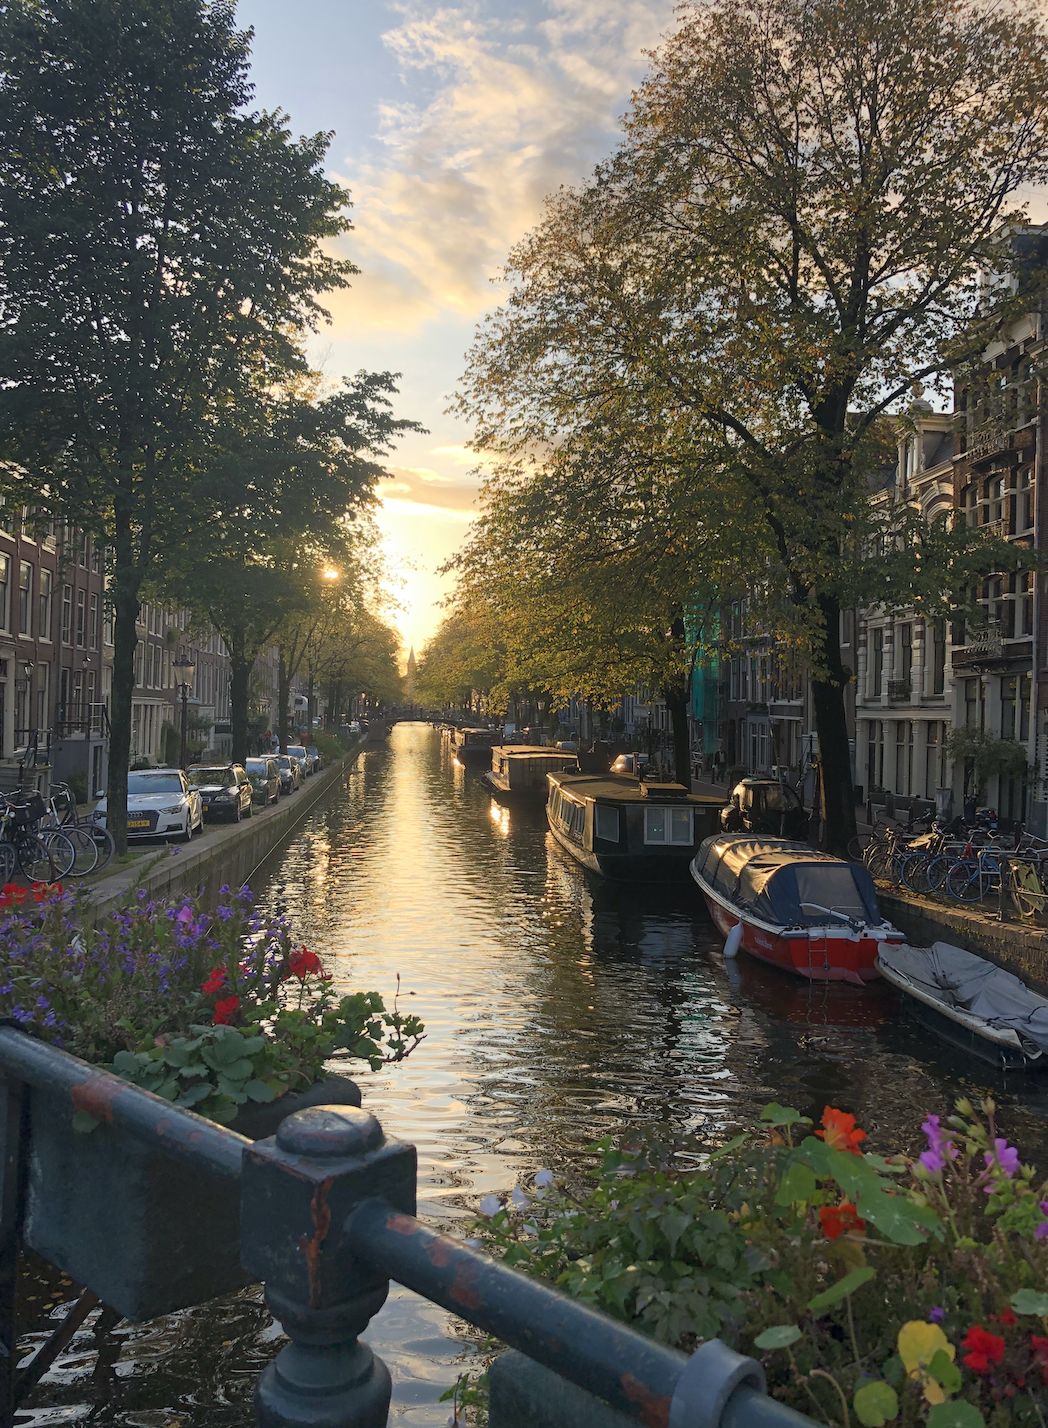 The canals of Amsterdam at sunset